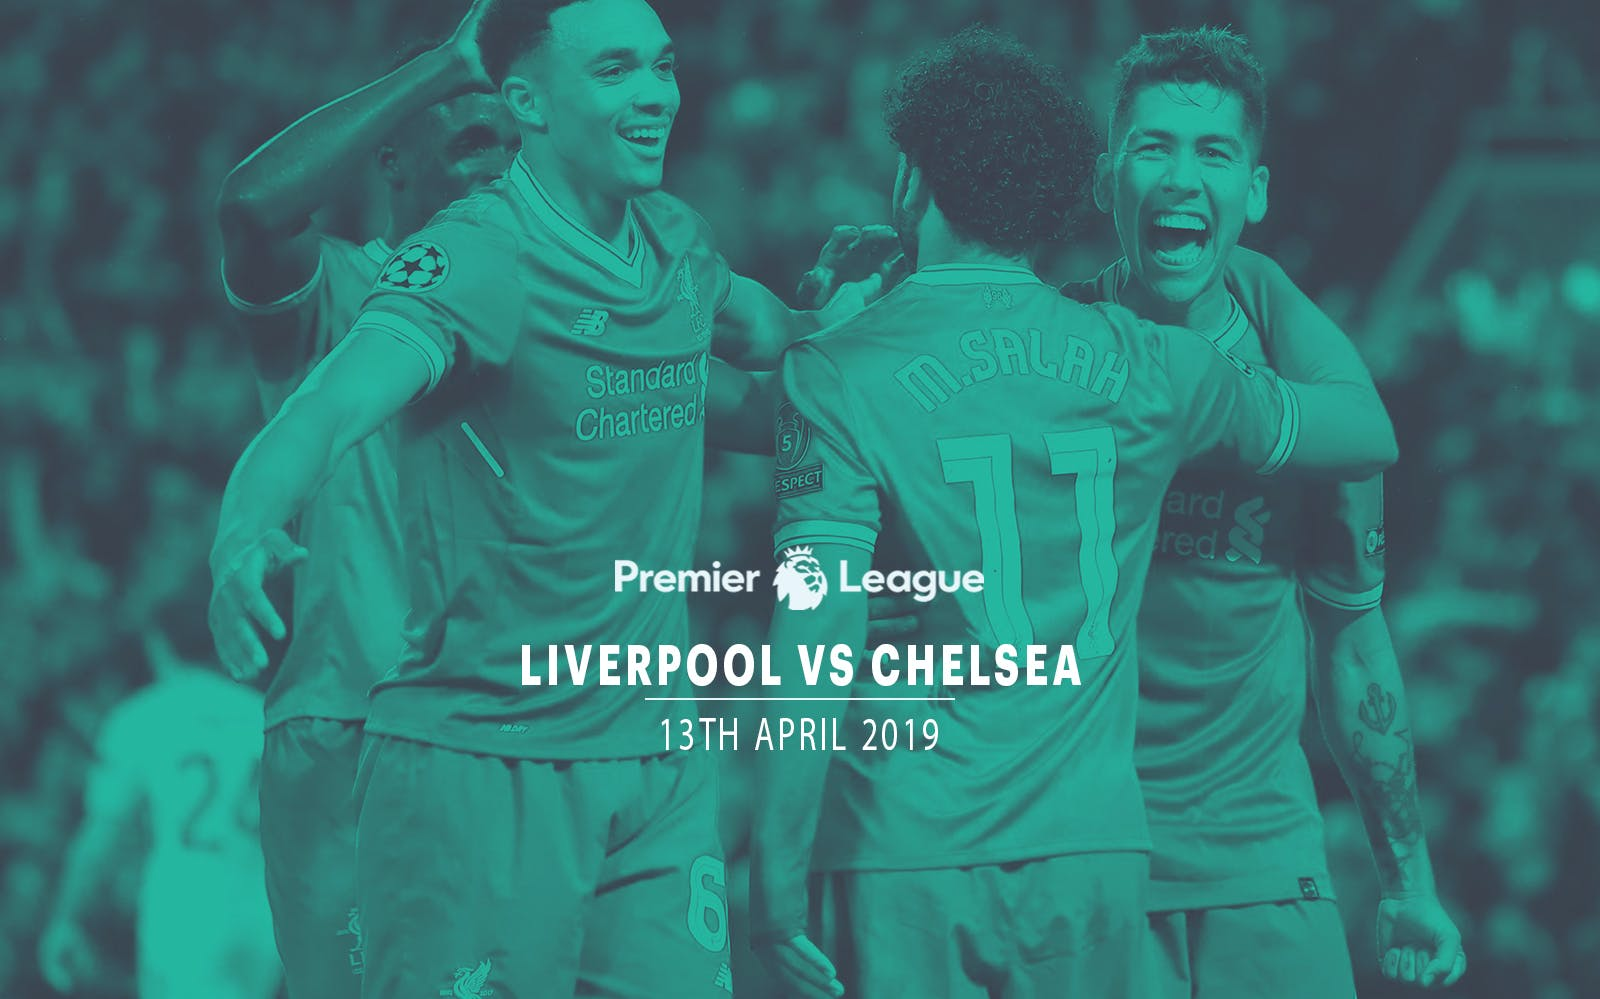 liverpool vs chelsea - 13th apr'19-1